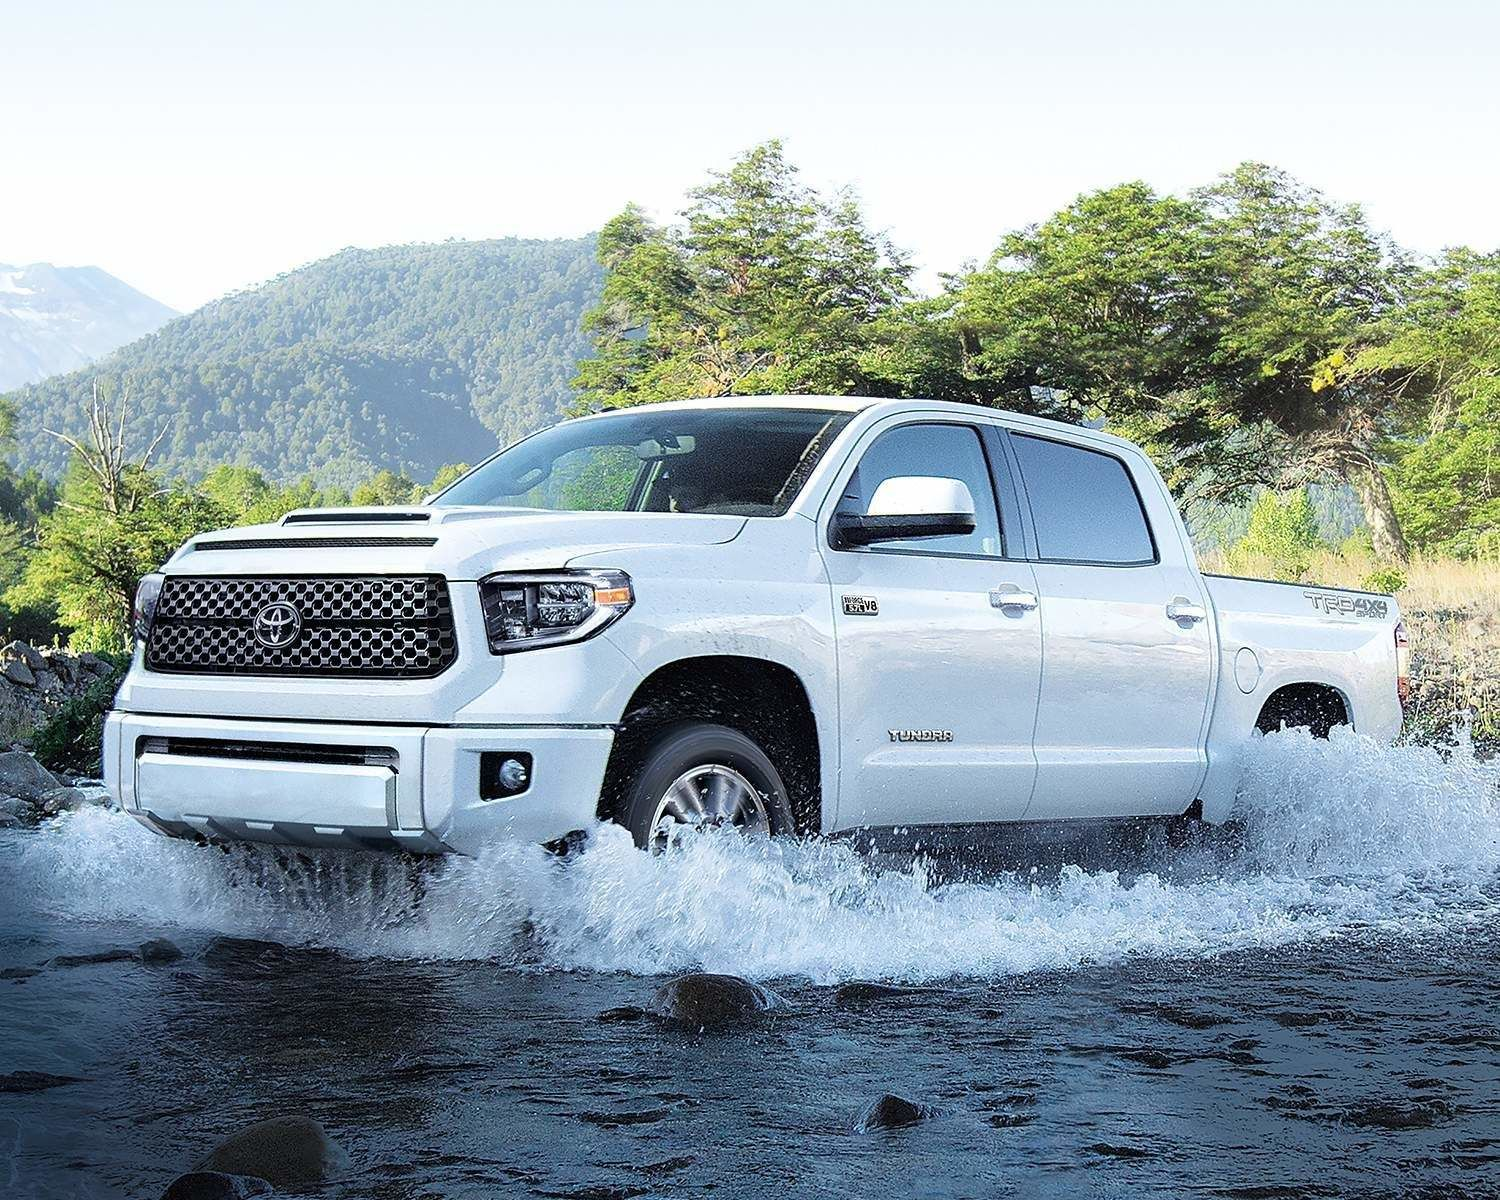 Tundra CrewMax TRD Sport Premium Package shown in Super White